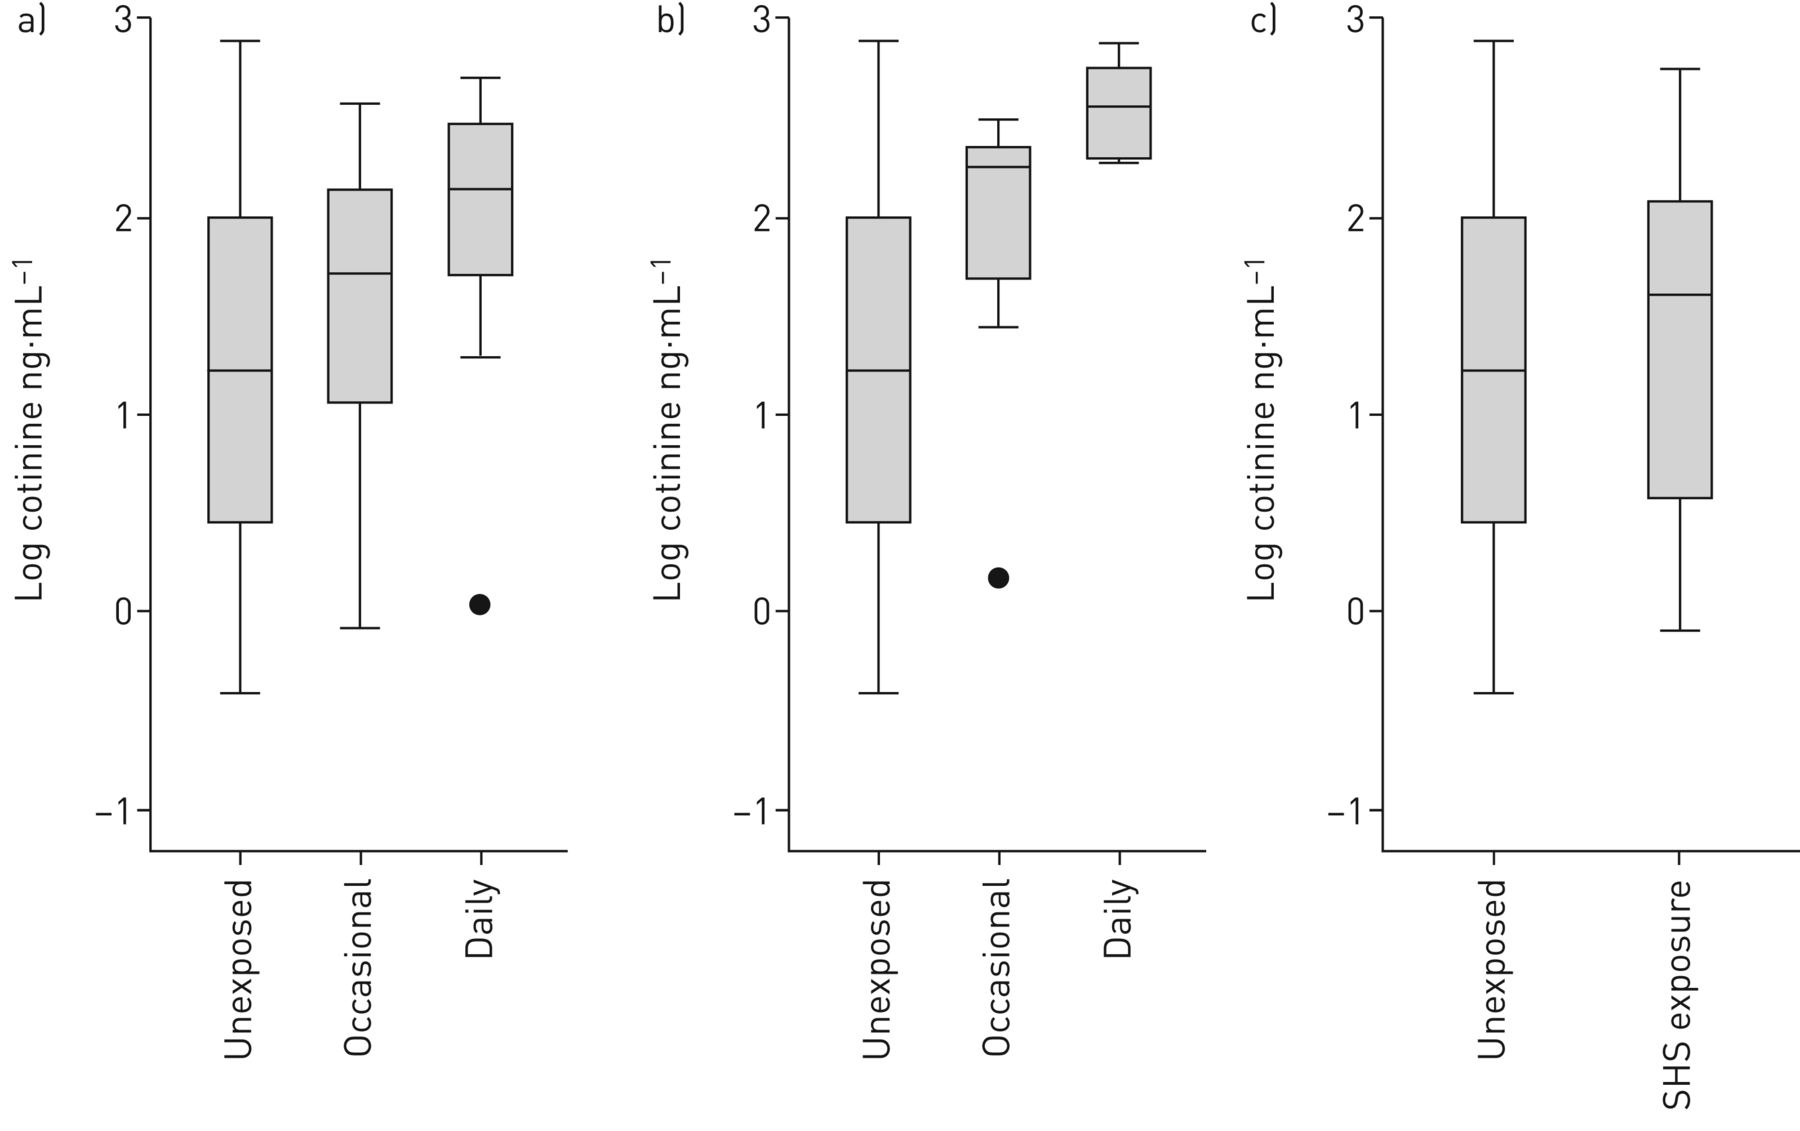 Tobacco smoke exposure in early life and adolescence in relation to